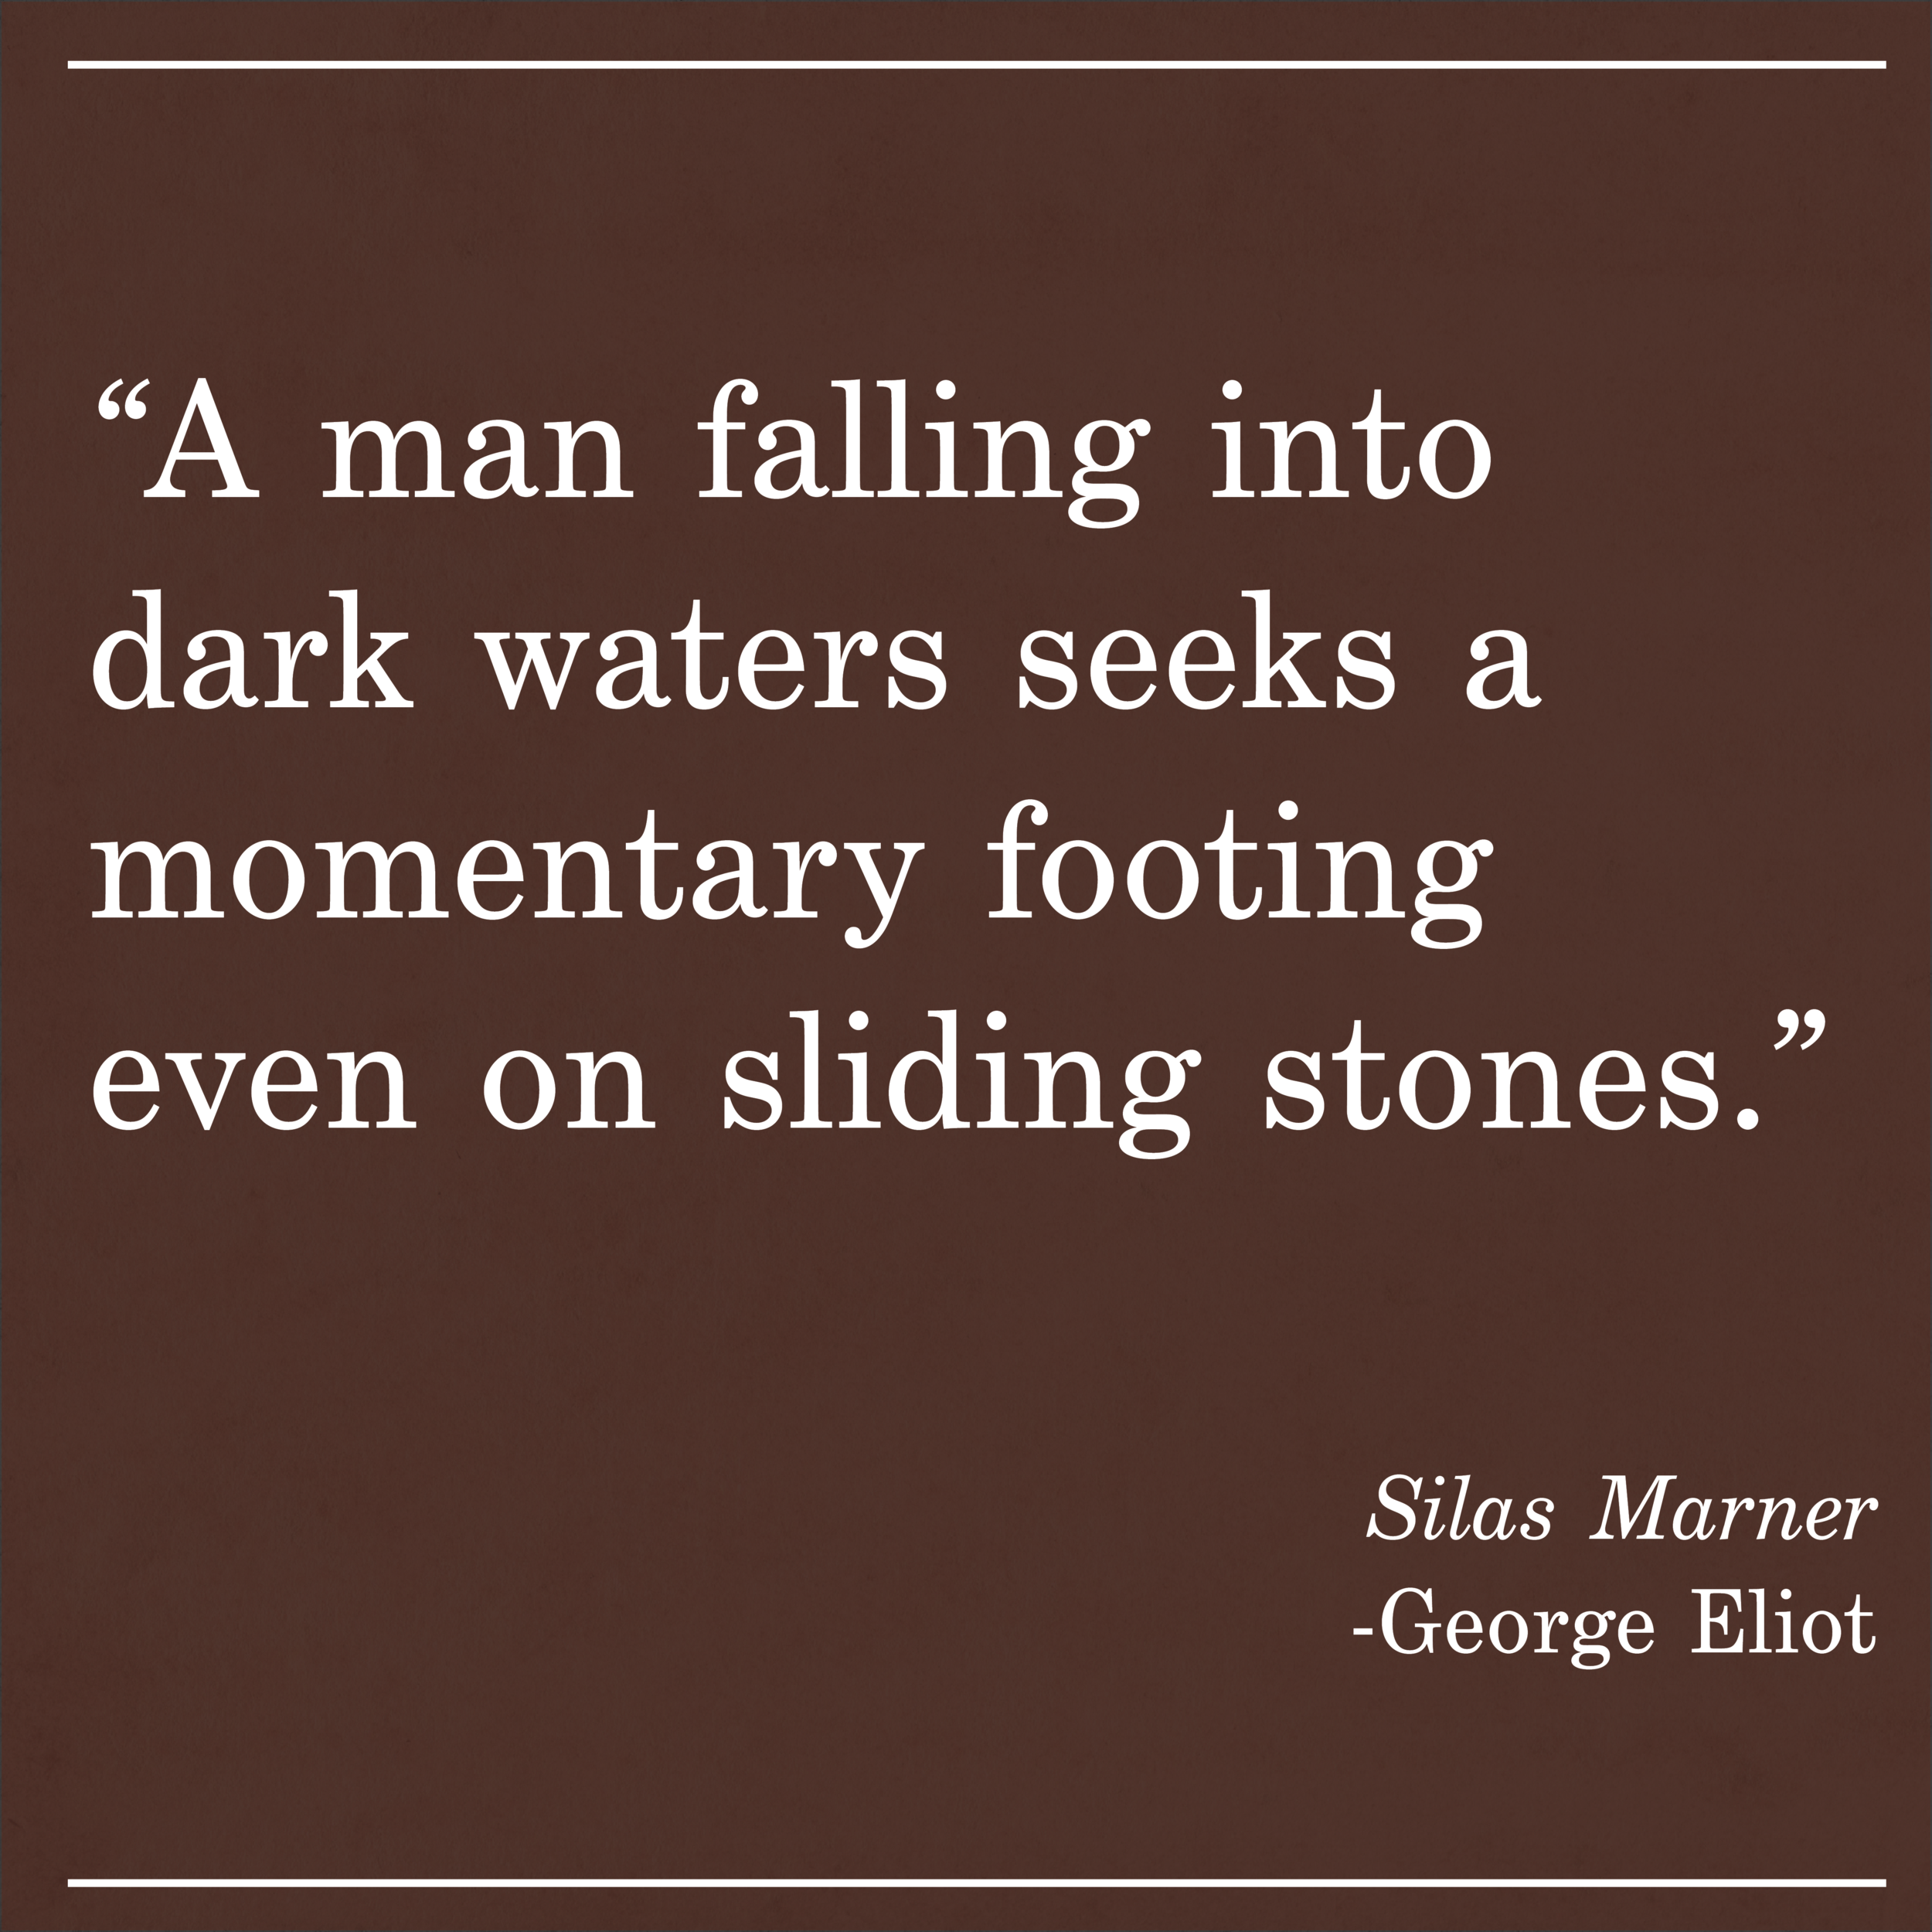 Daily Quote Silas Marner George Eliot